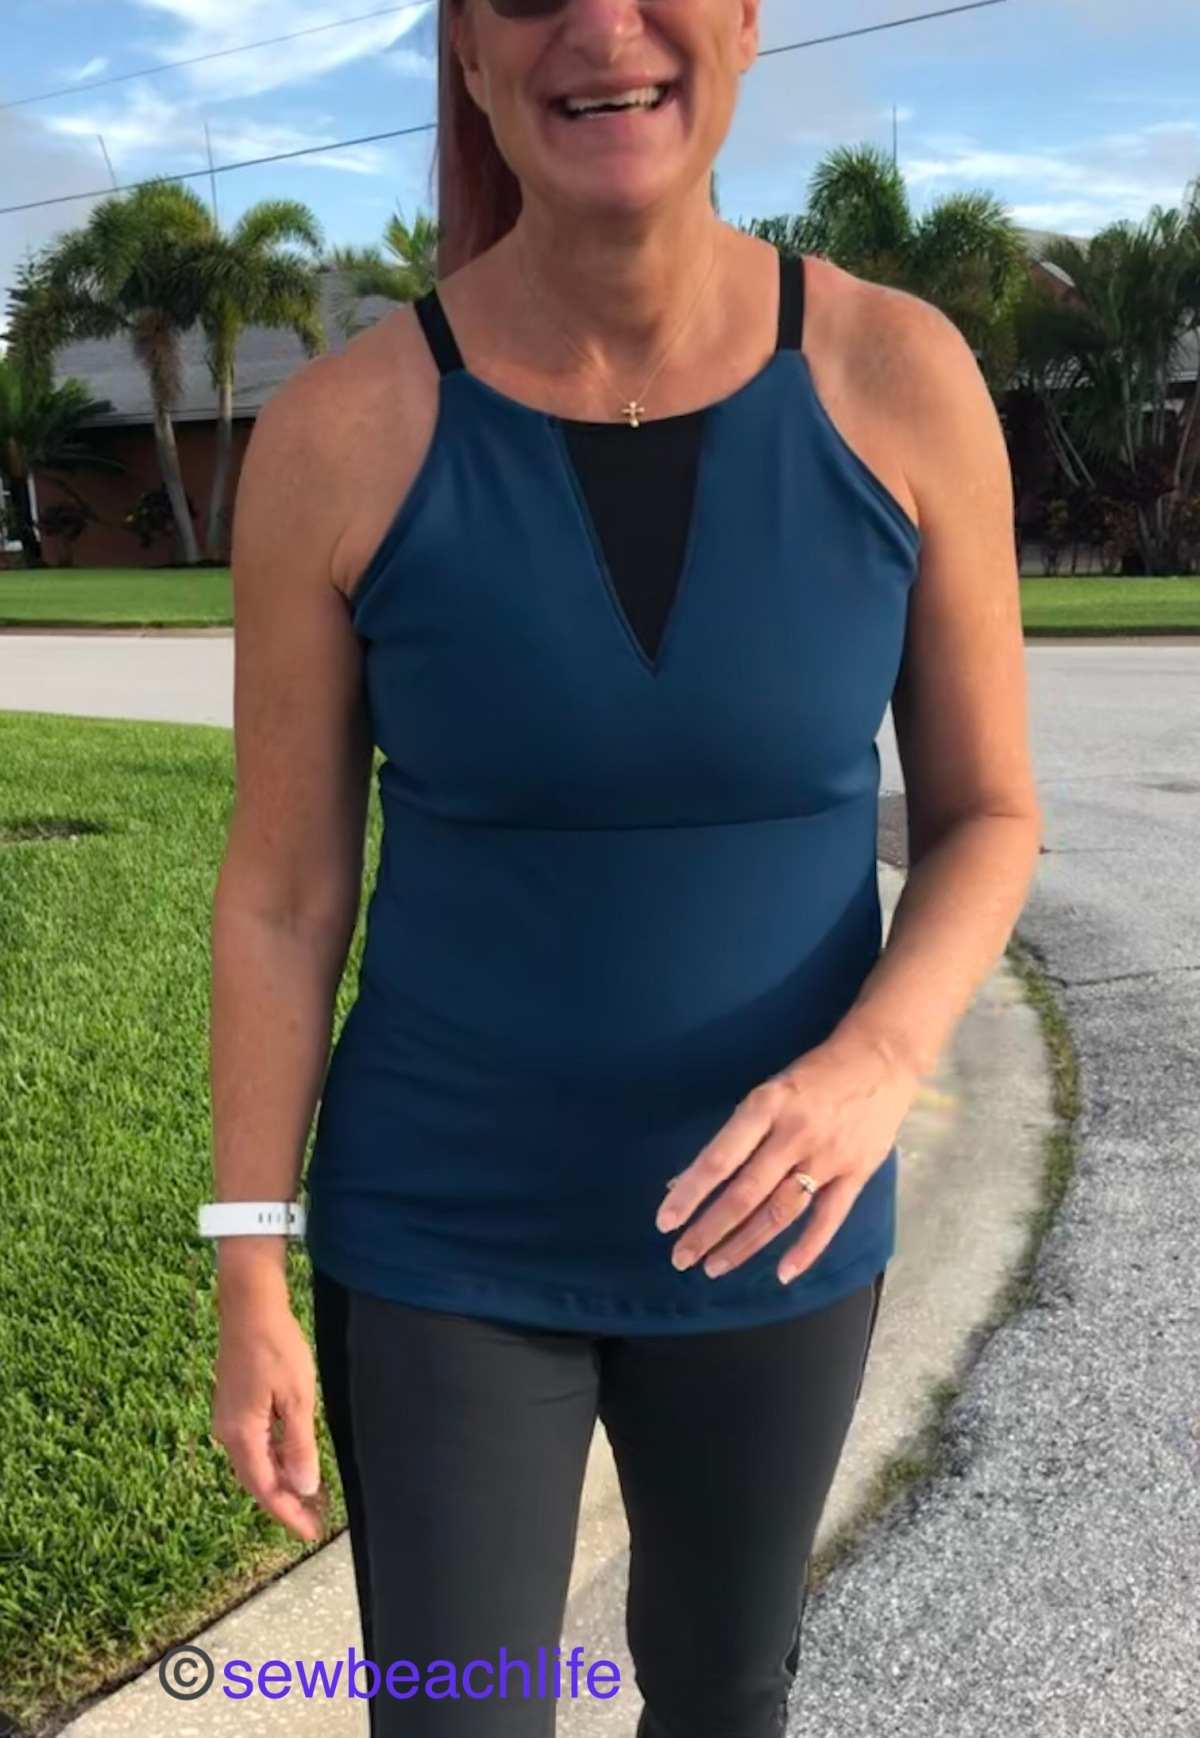 Titania Tunic Workout Top Hack